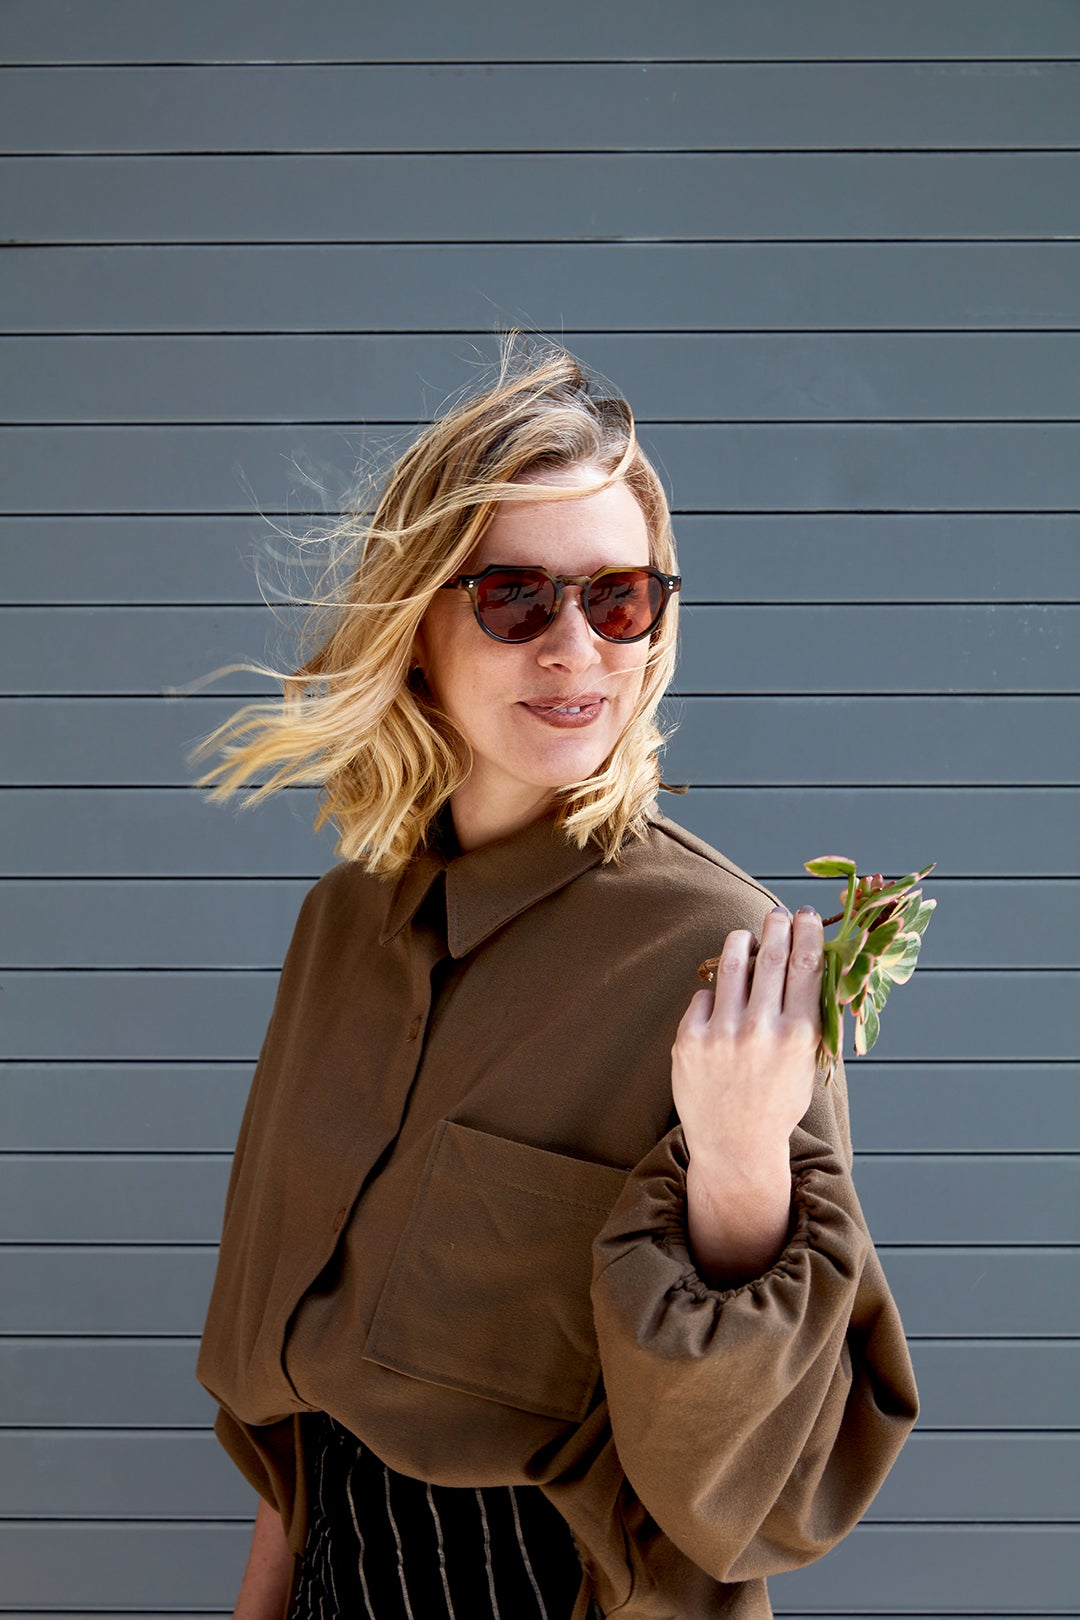 woman with sunglasses holding leaf